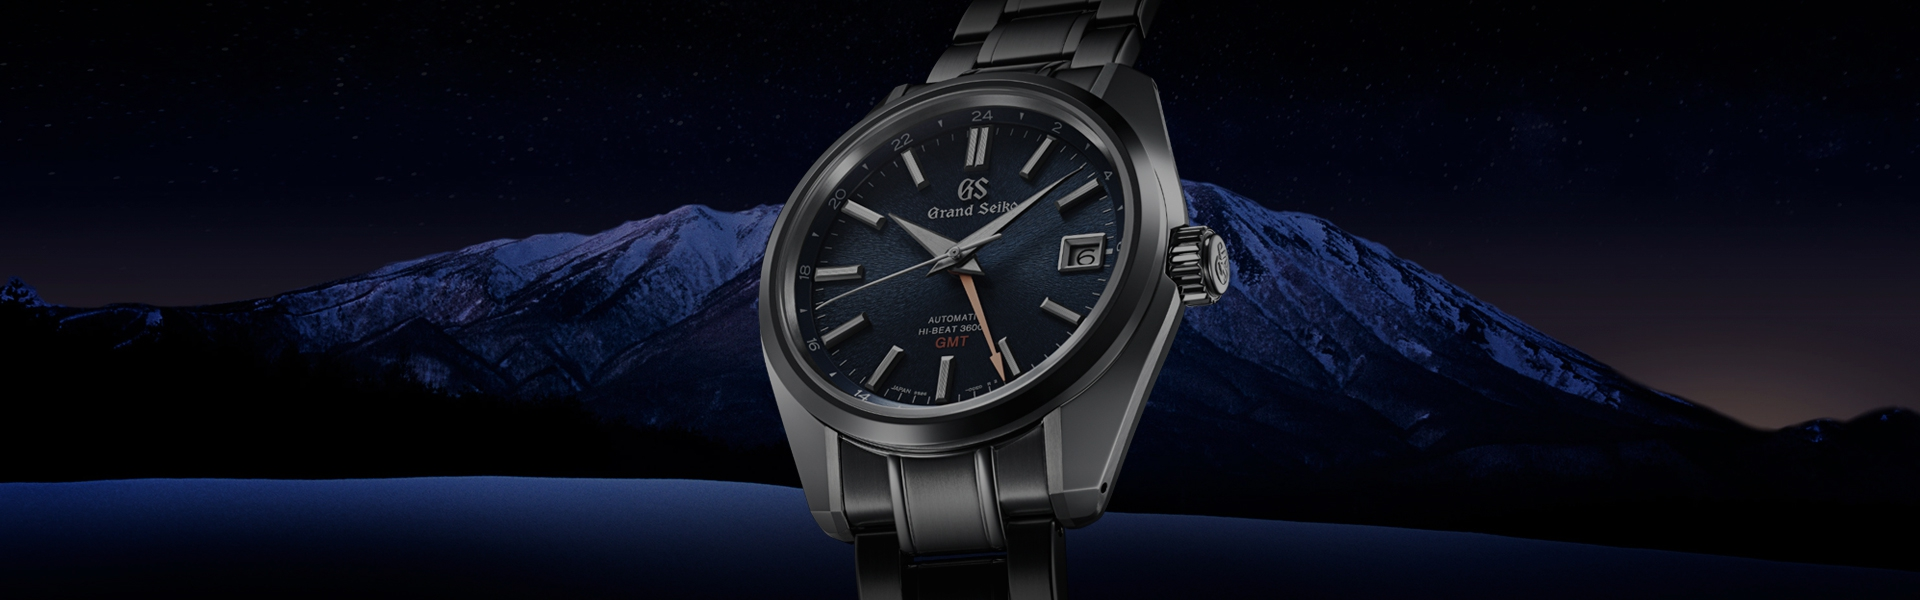 Grand Seiko Boutique Limited Edition